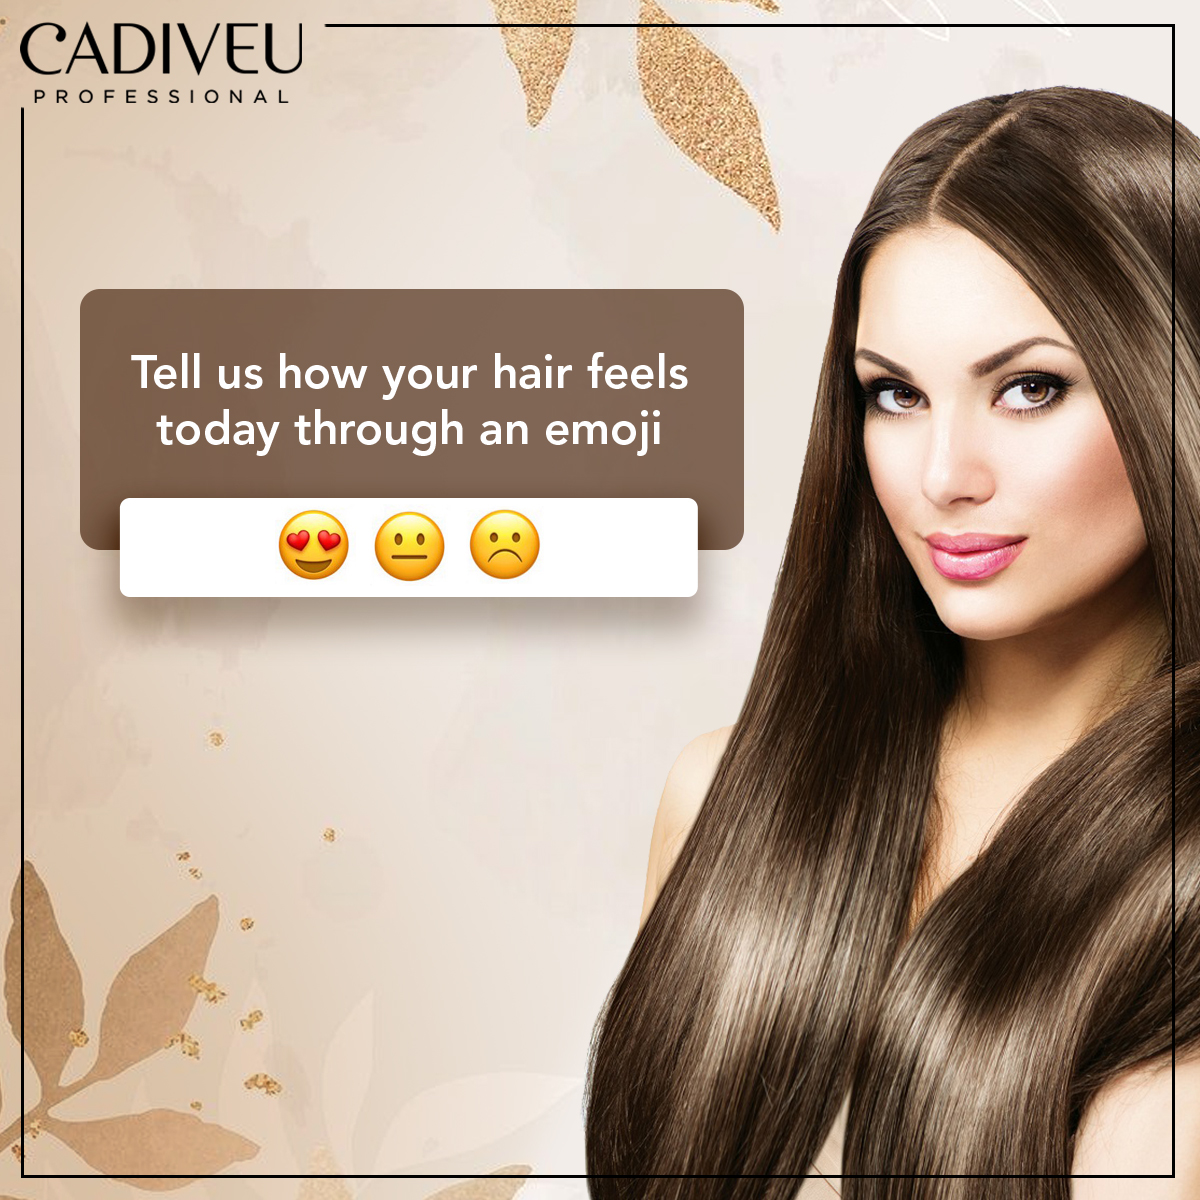 How is your hair feeling today? #CadiveuCares #CadiveuProfessional #CadiveuIndia #CadiveuLovers #HairGoals #HairDays #GoodHairDays #GoodHairDayEveryday #MoodOfTheDay #HairEssentialspic.twitter.com/eKeHJatkD4